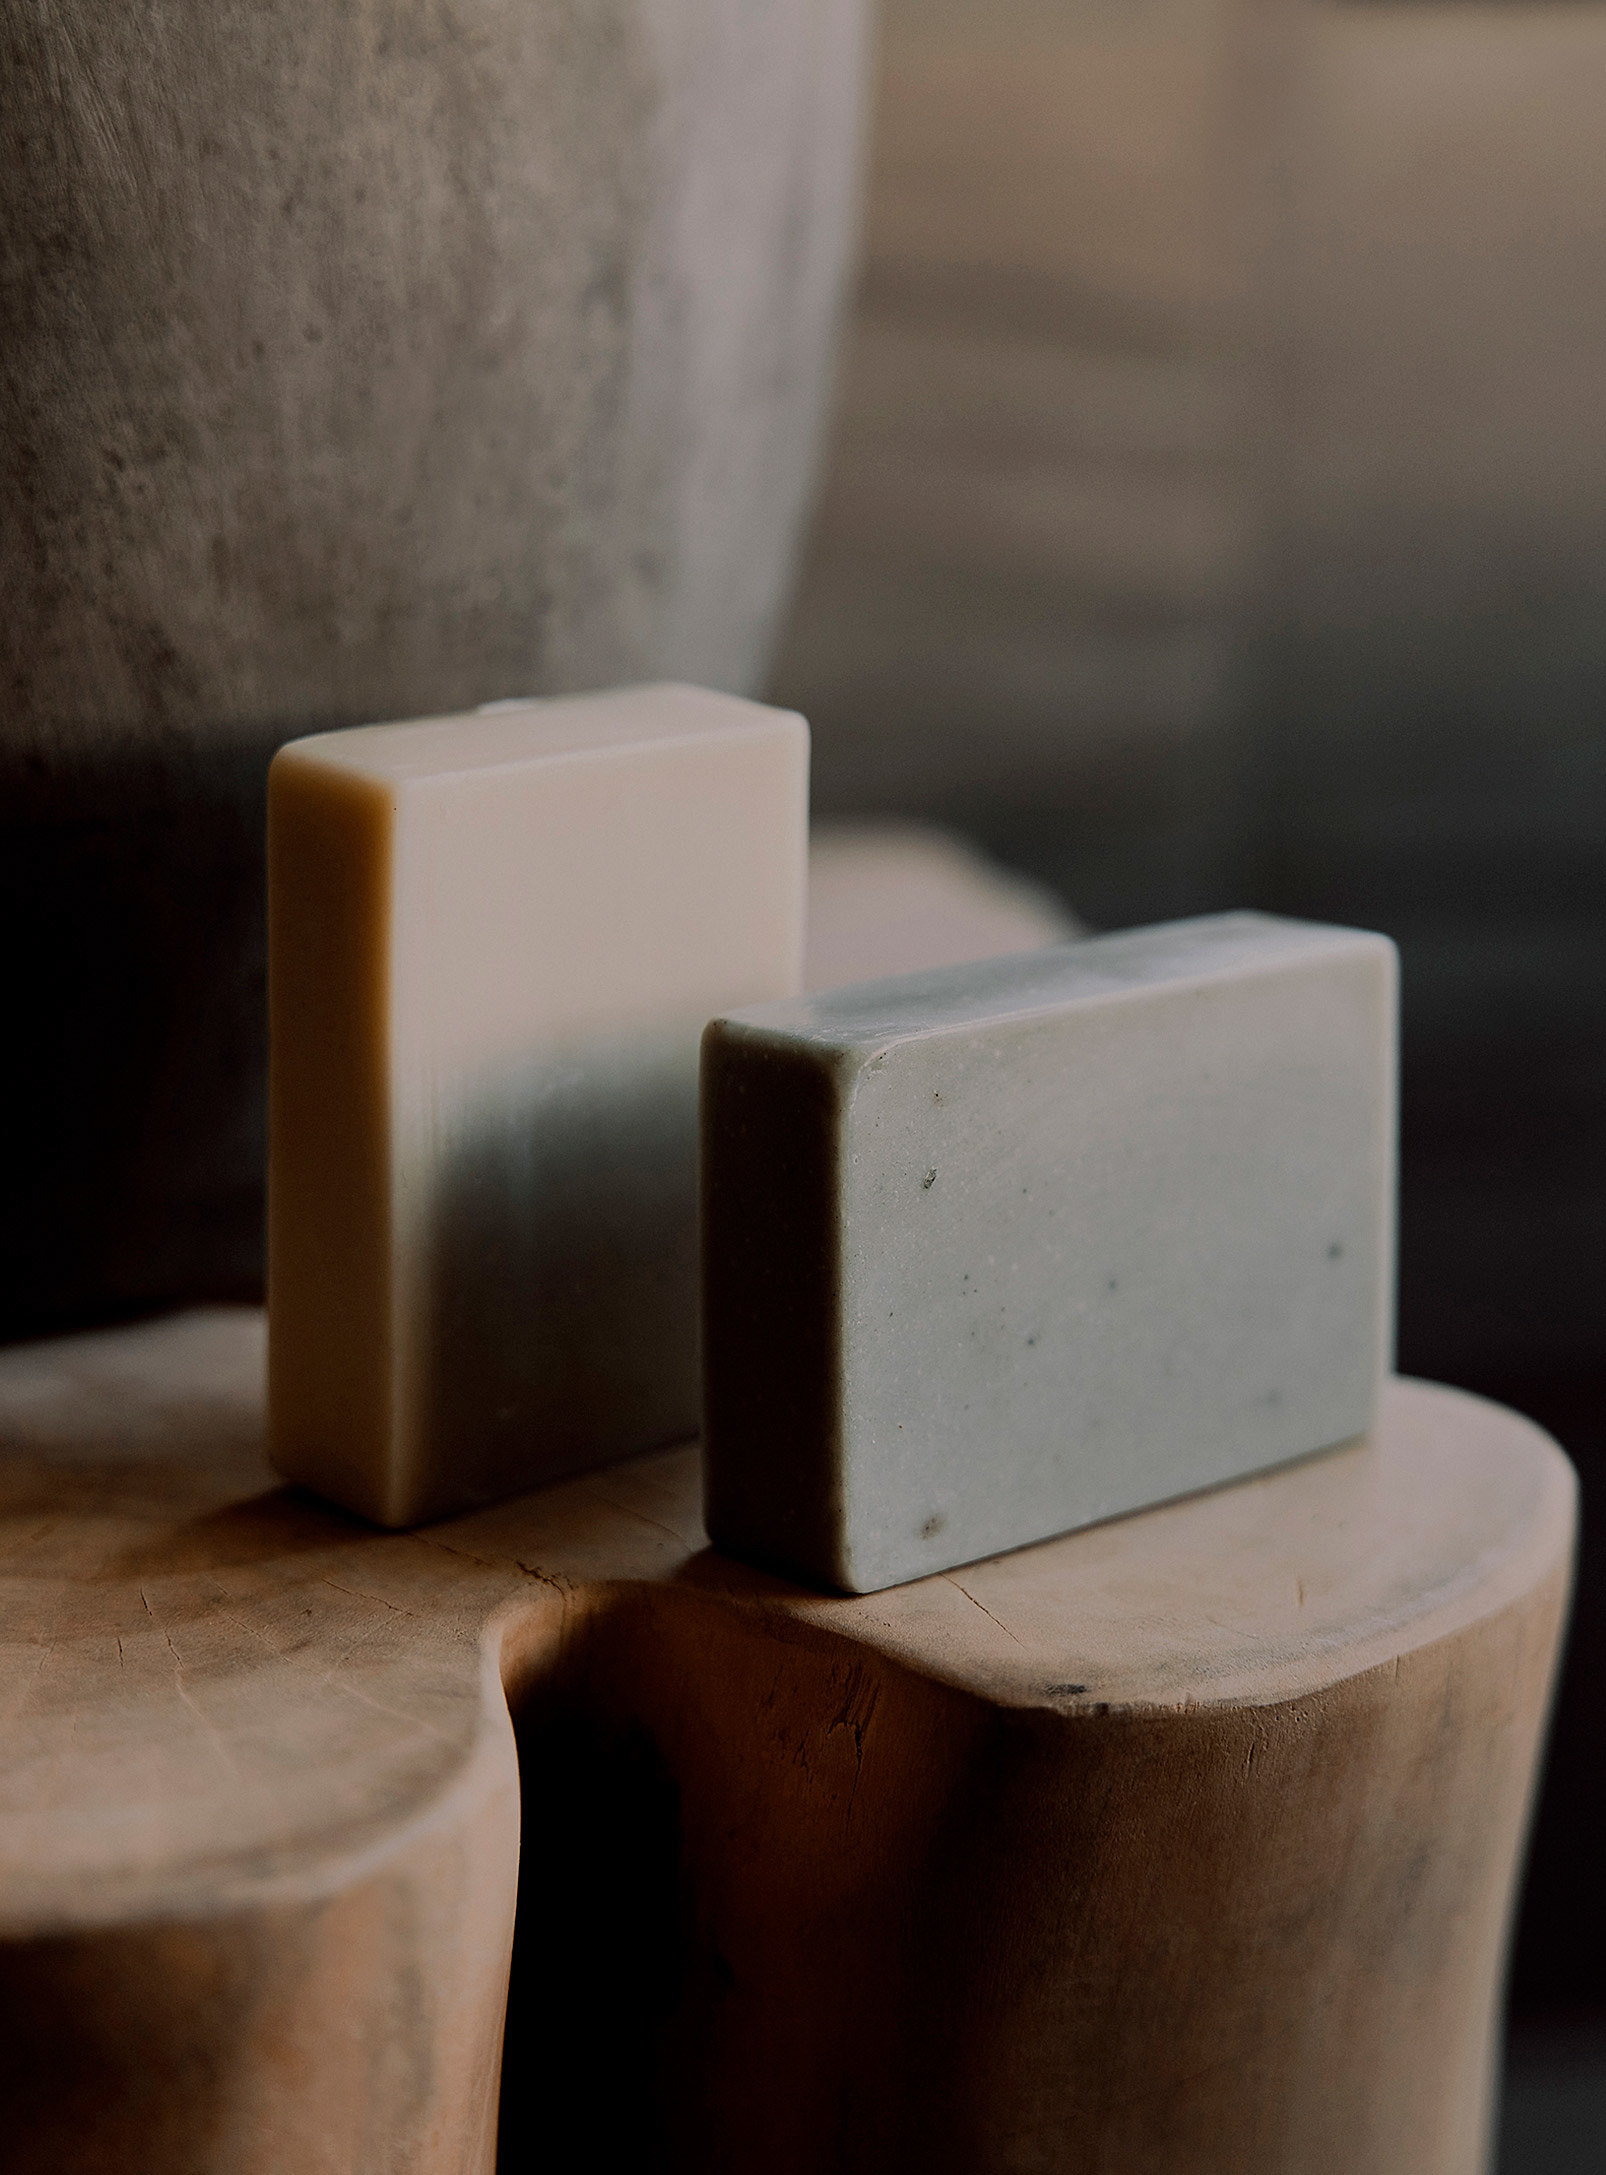 Two bars of soap on a wooden stool